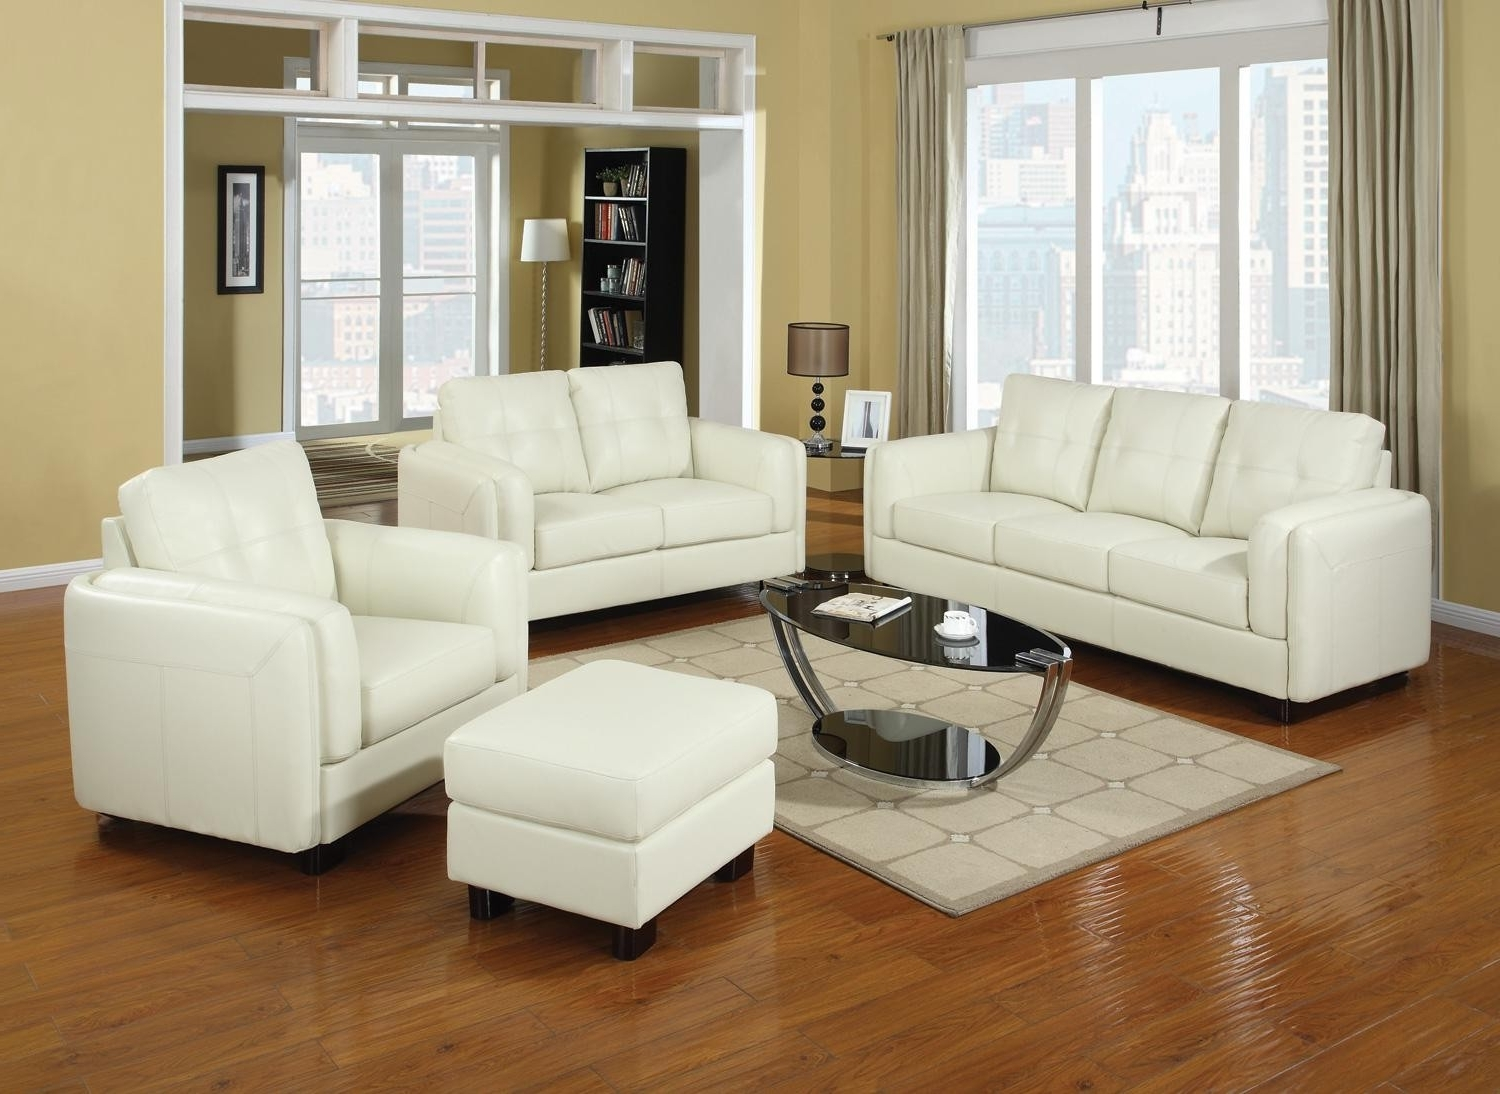 Cream Colored Sofas Intended For Trendy Couch: Attractive Cream Couches Cream Couch Decorating Ideas (View 15 of 20)